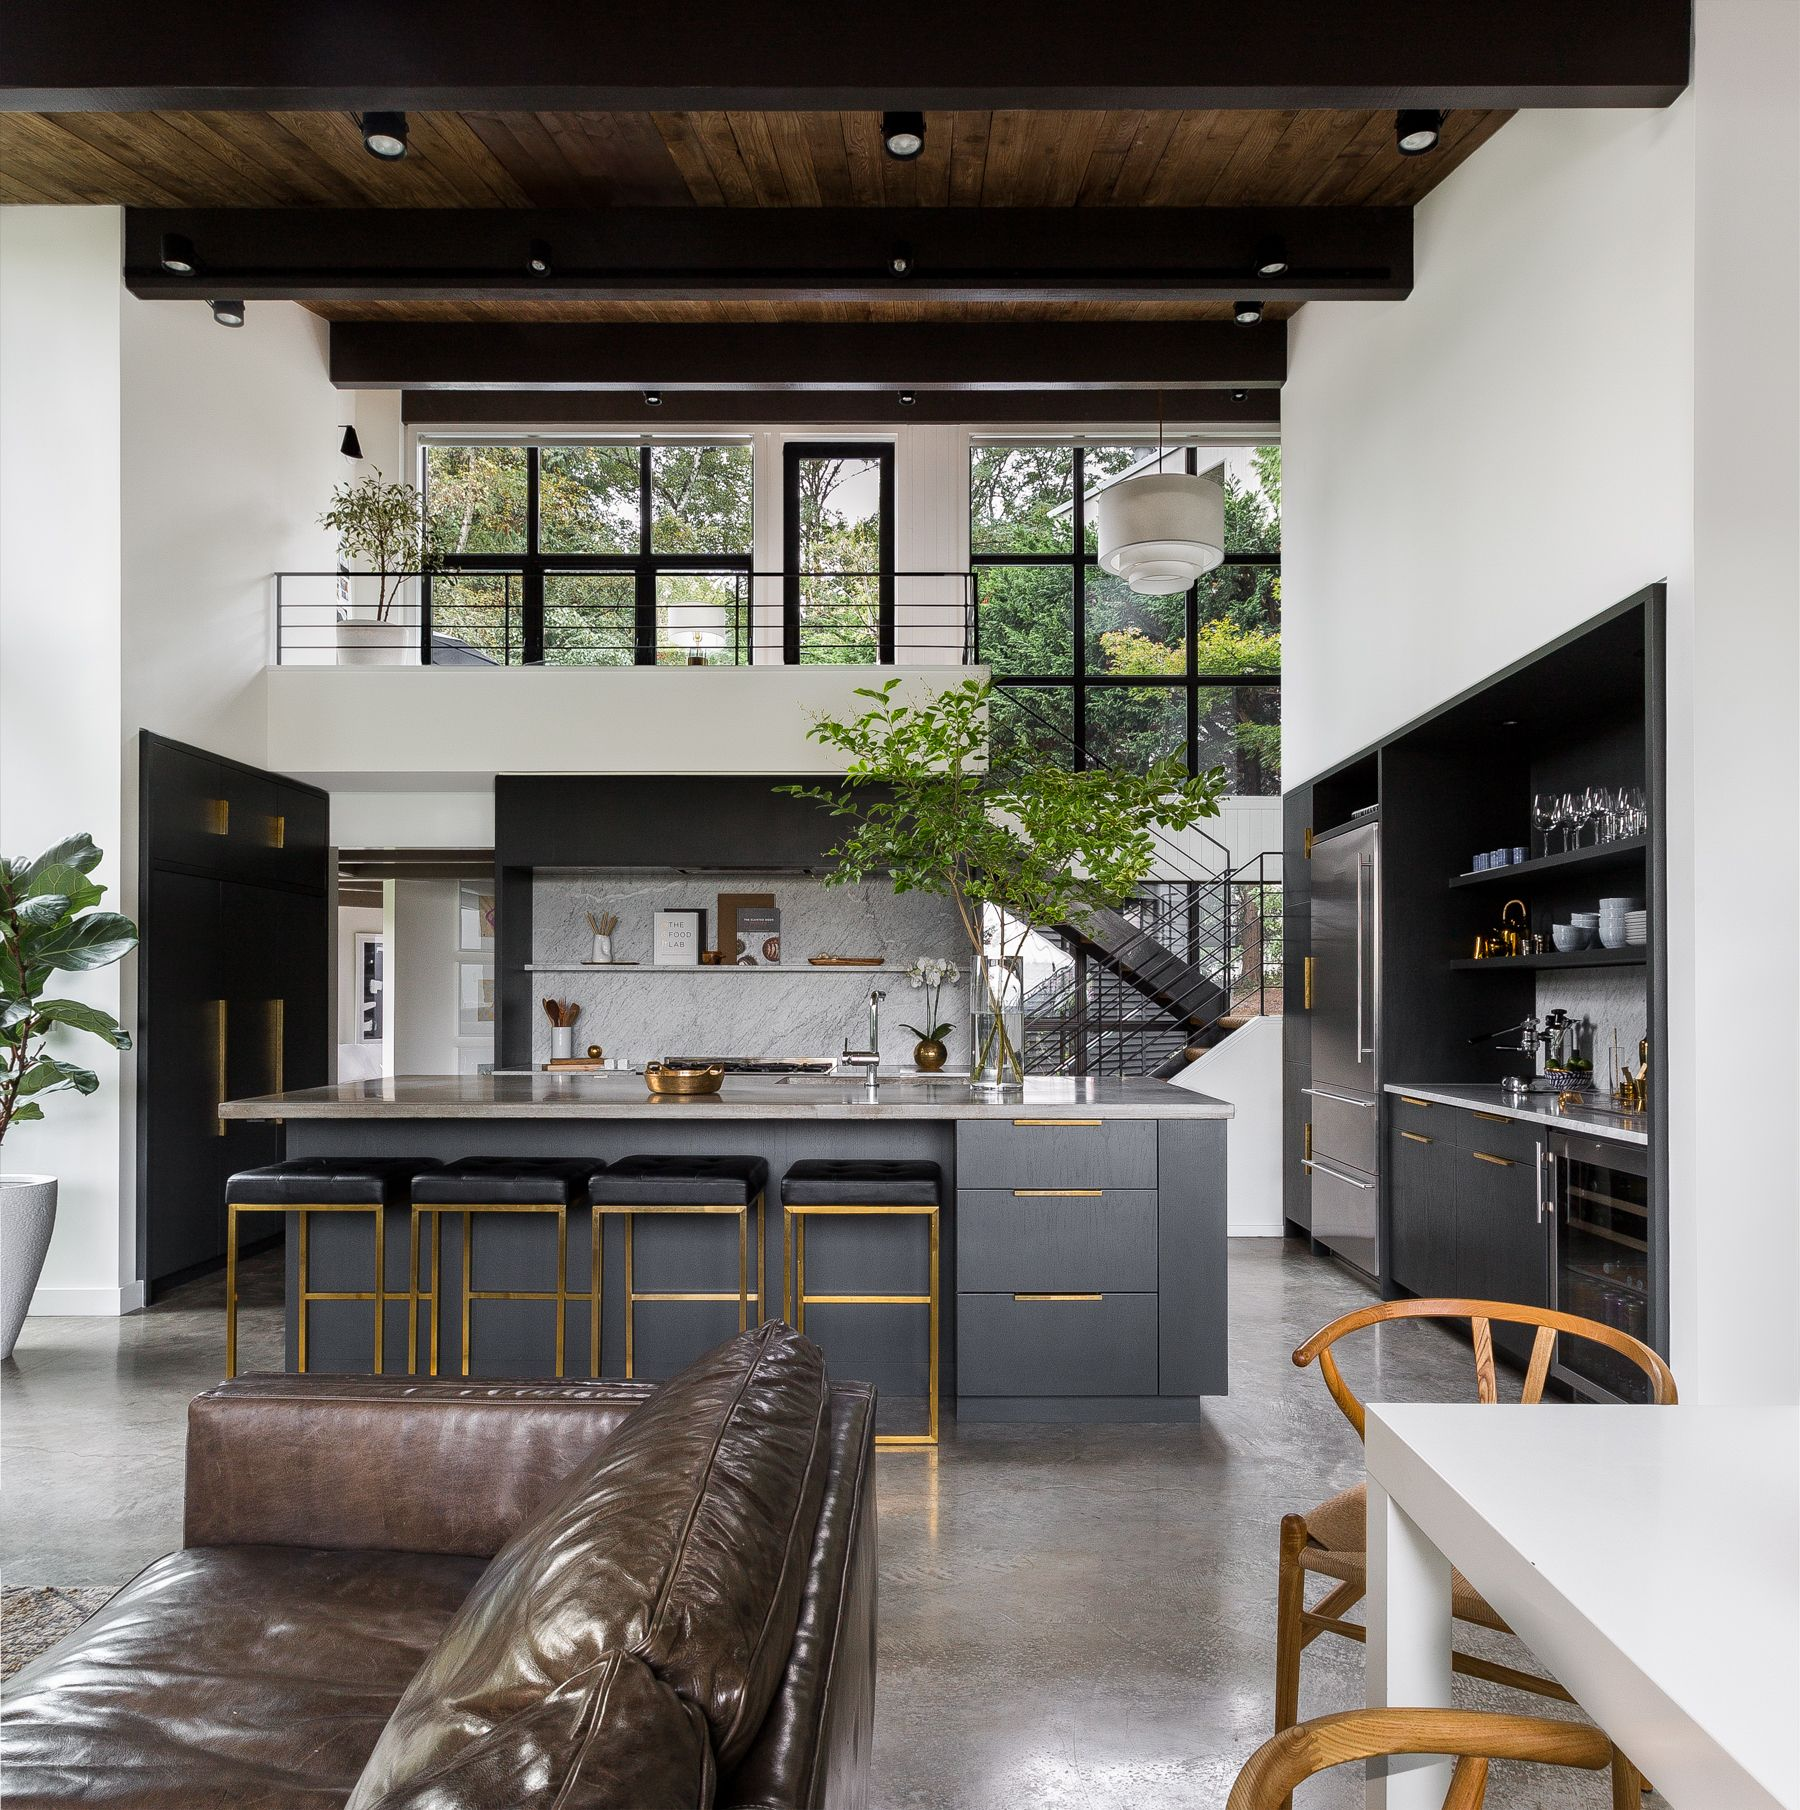 Modern Kitchen Cabinets Seattle: Photo 1 Of 17 In A 1957 Midcentury In Seattle Receives A